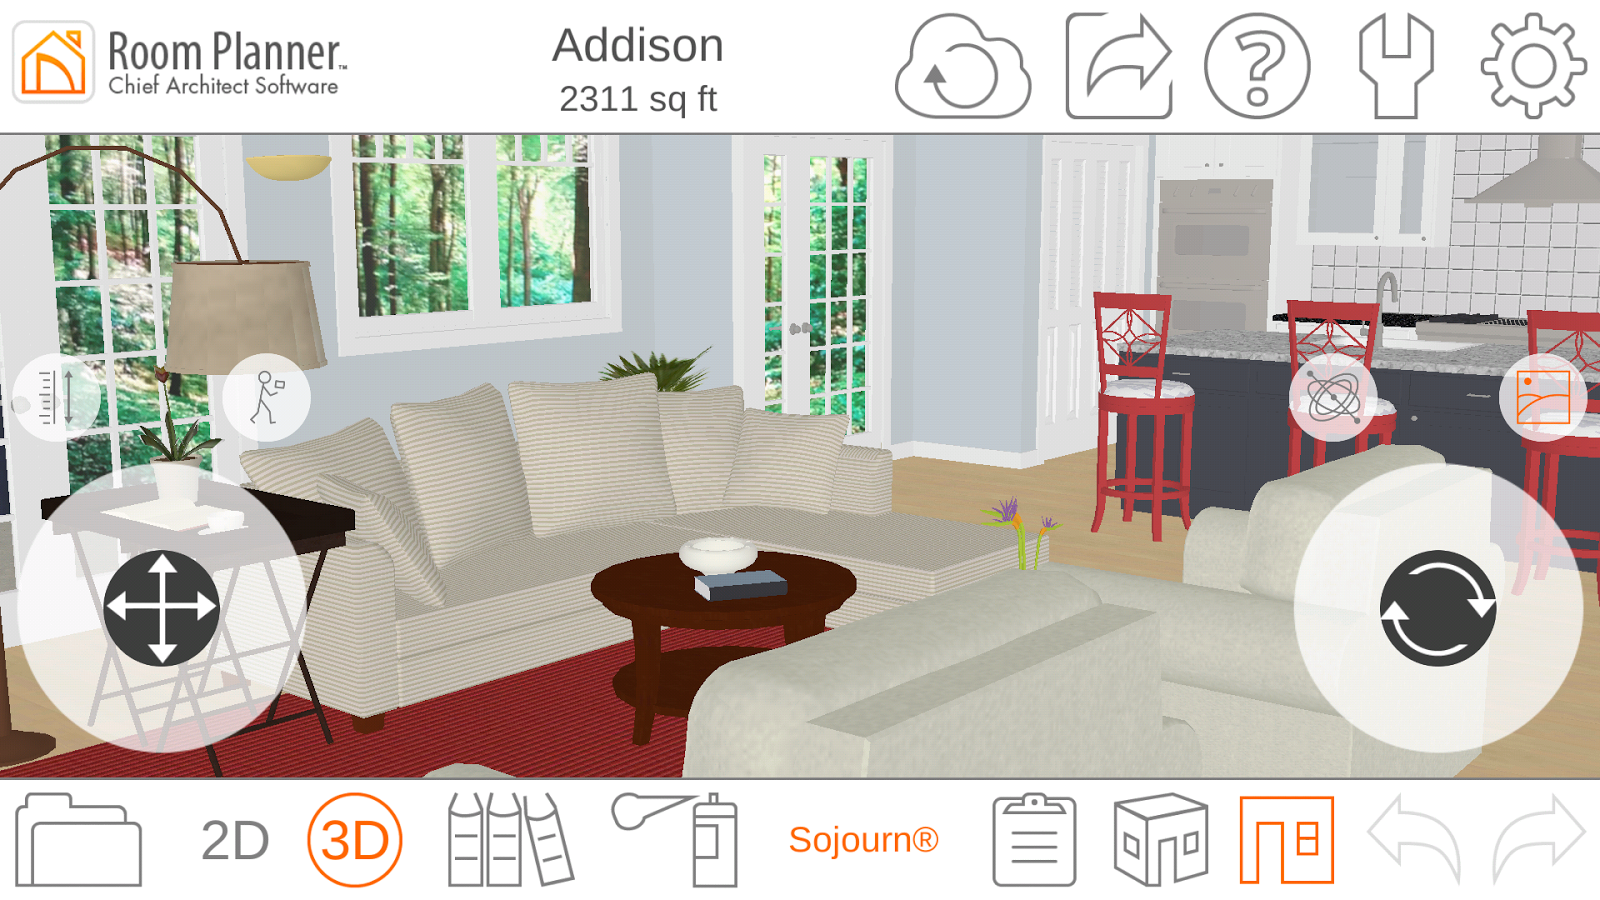 Room planner le home design 4 3 0 apk download android for Room planner software free download